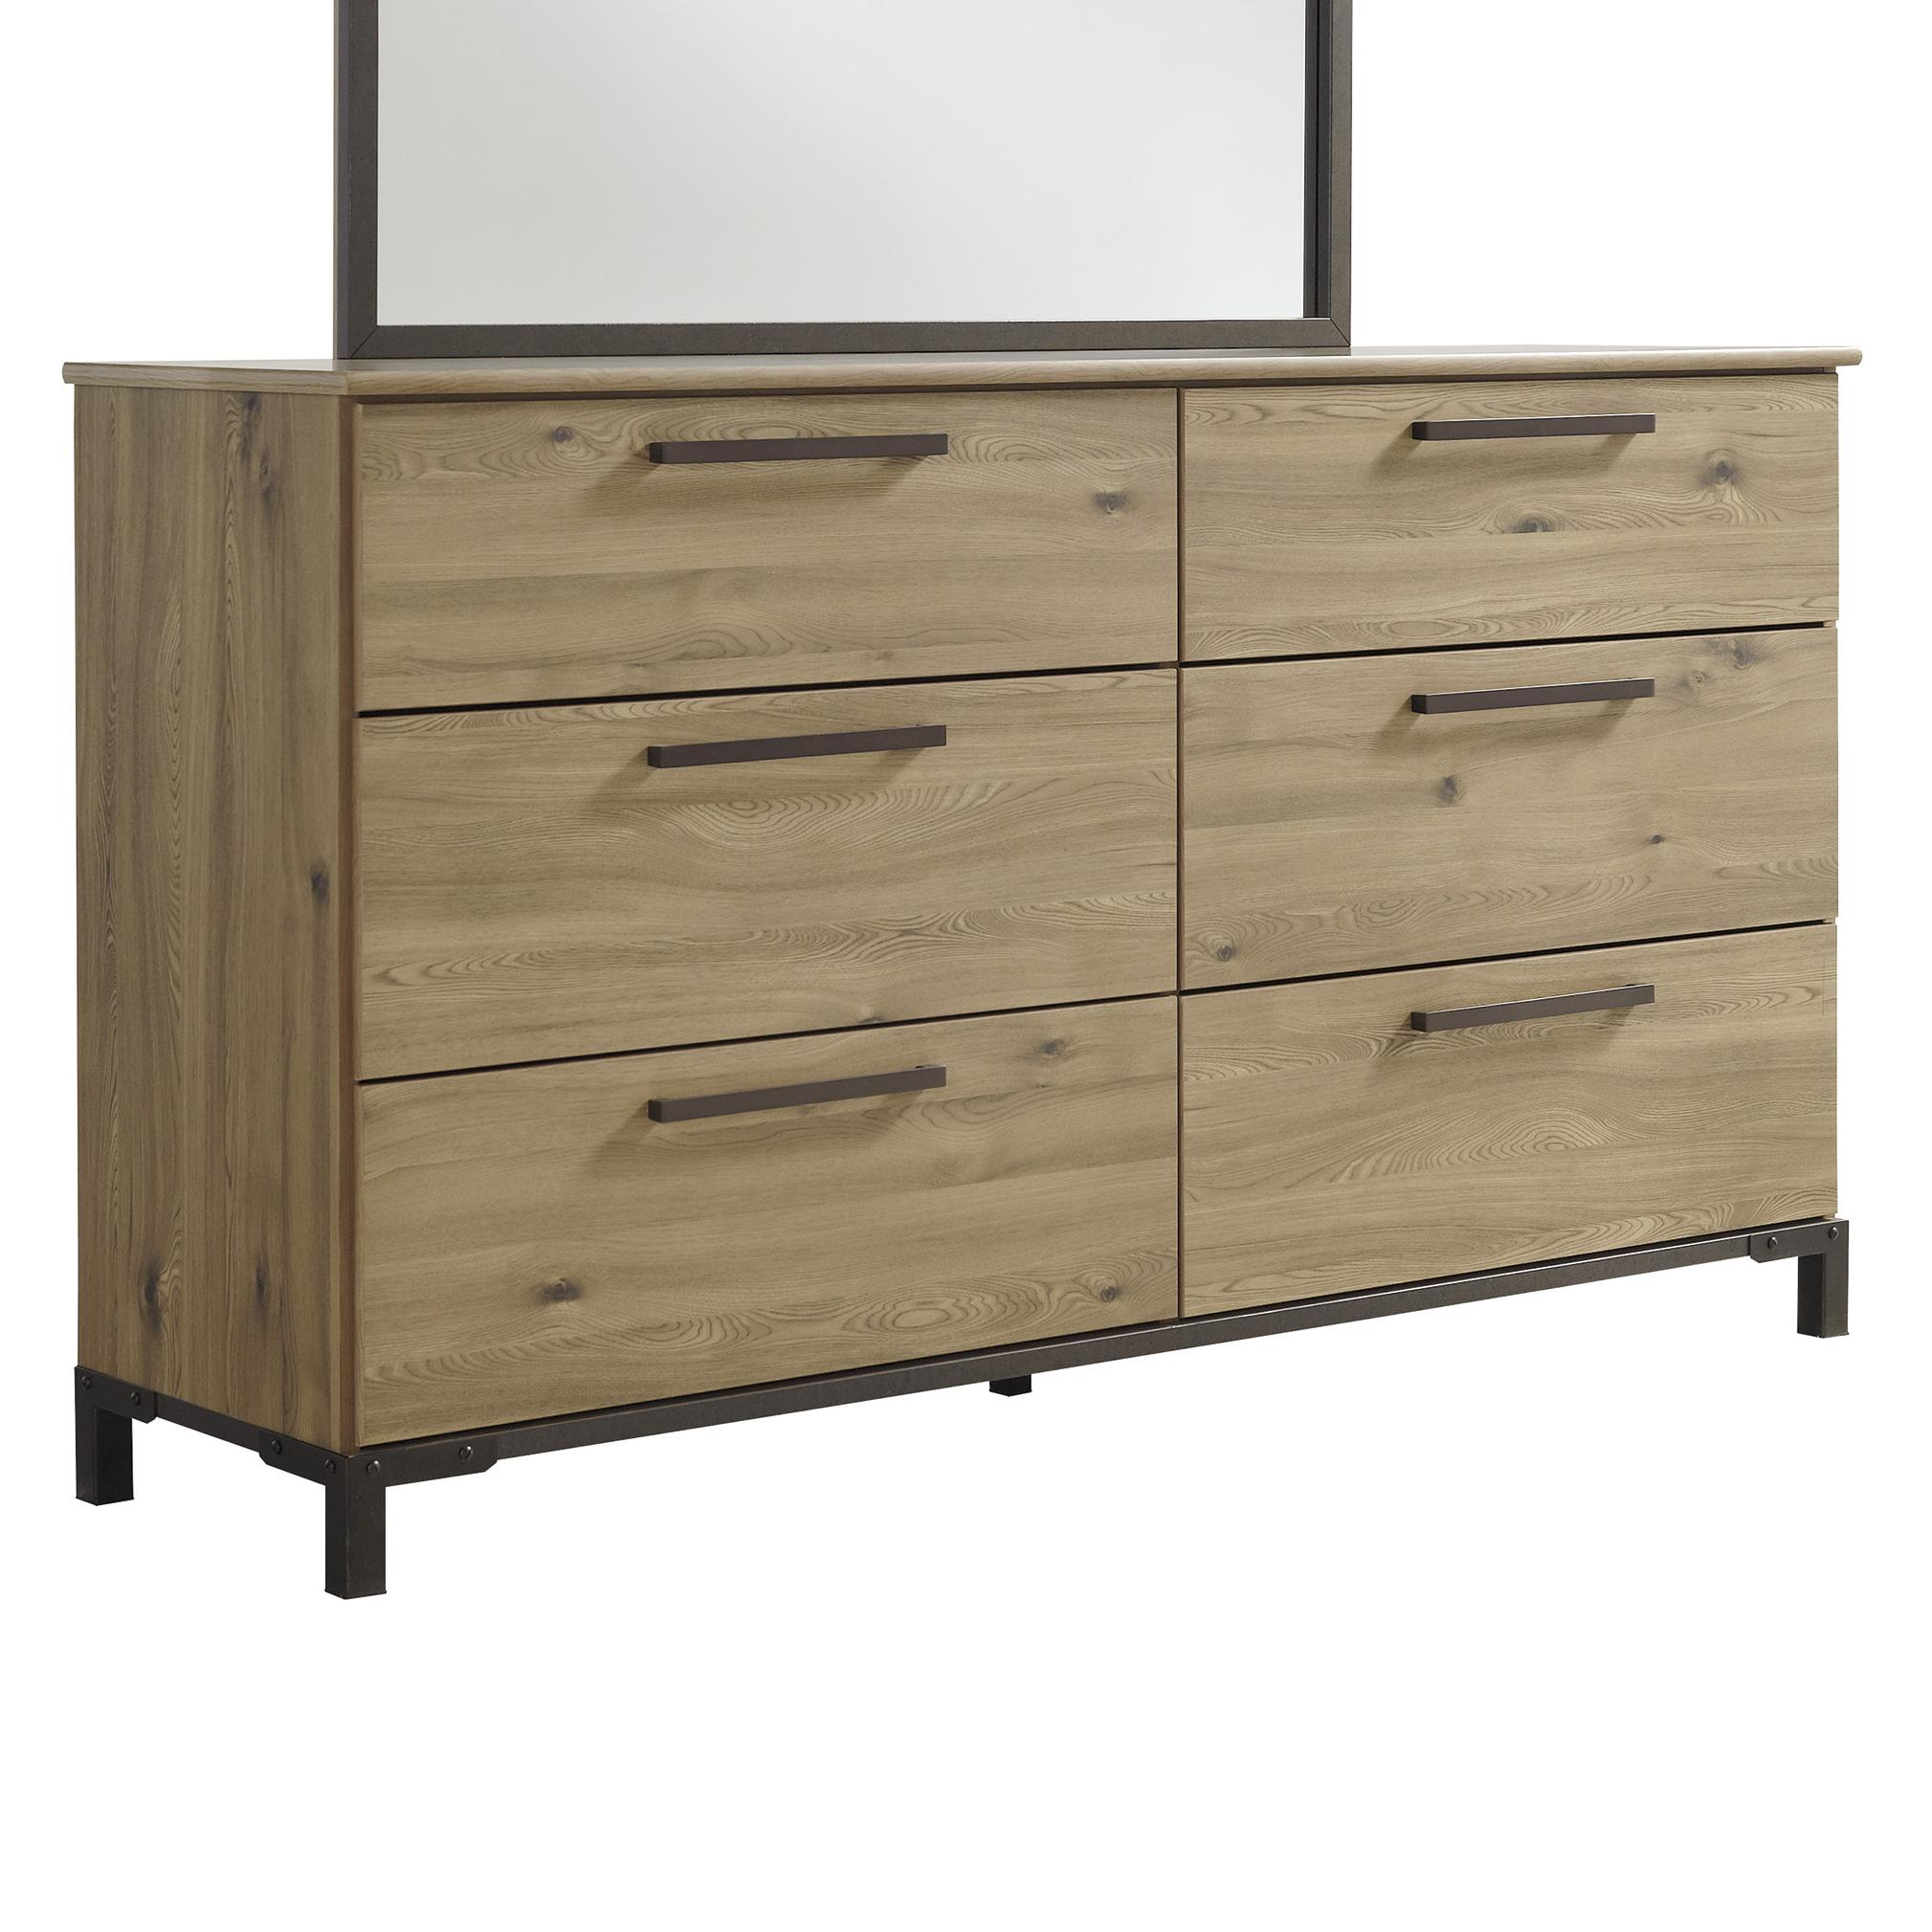 Signature Design by Ashley Dexifield Dresser - Item Number: B298-21